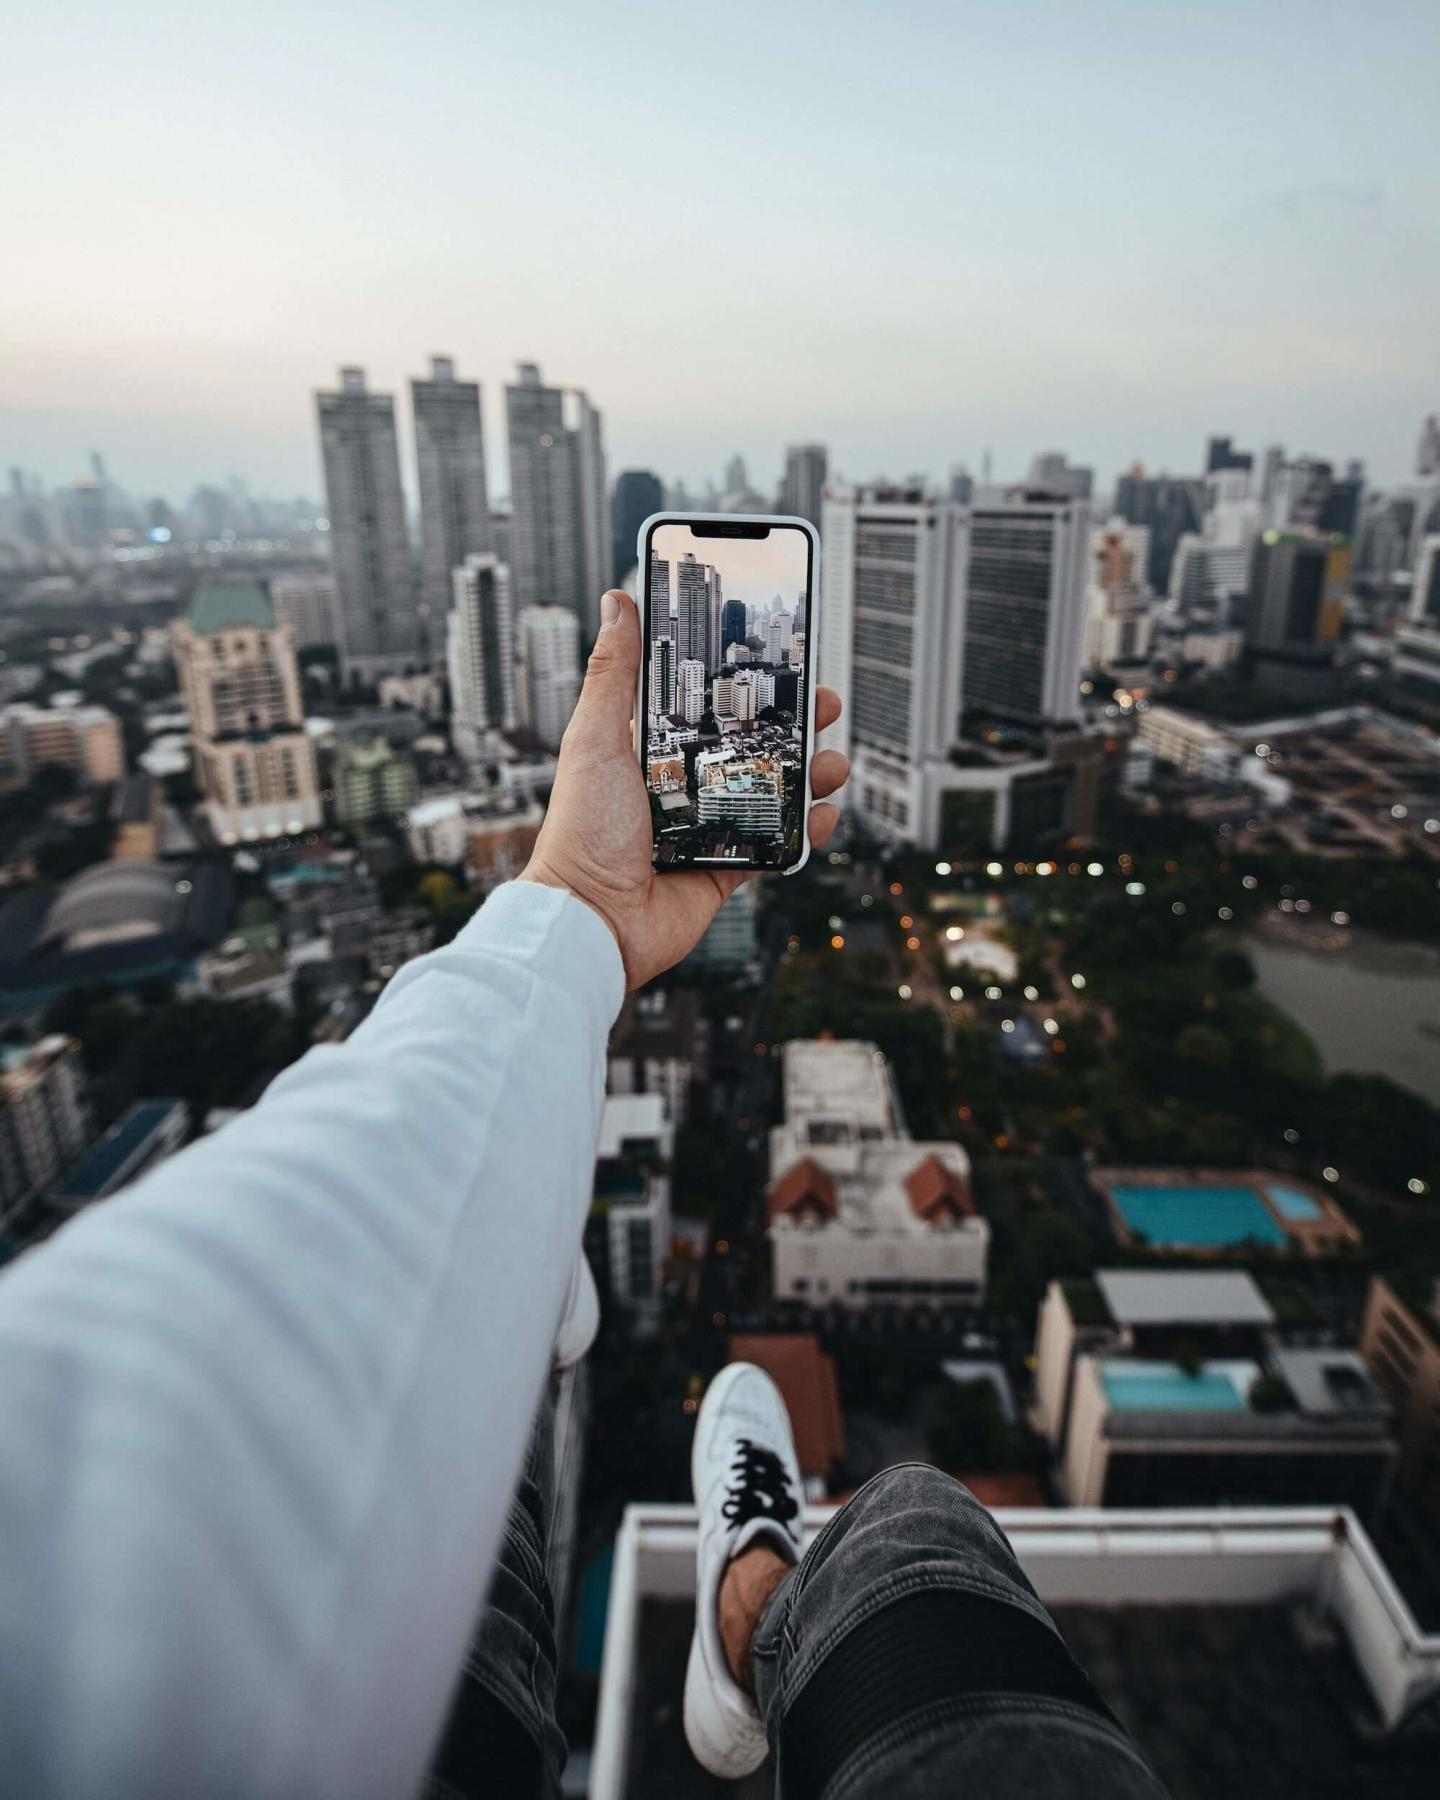 point-of-view image of a person sitting on a tall building taking a photo of other buildings with their phone